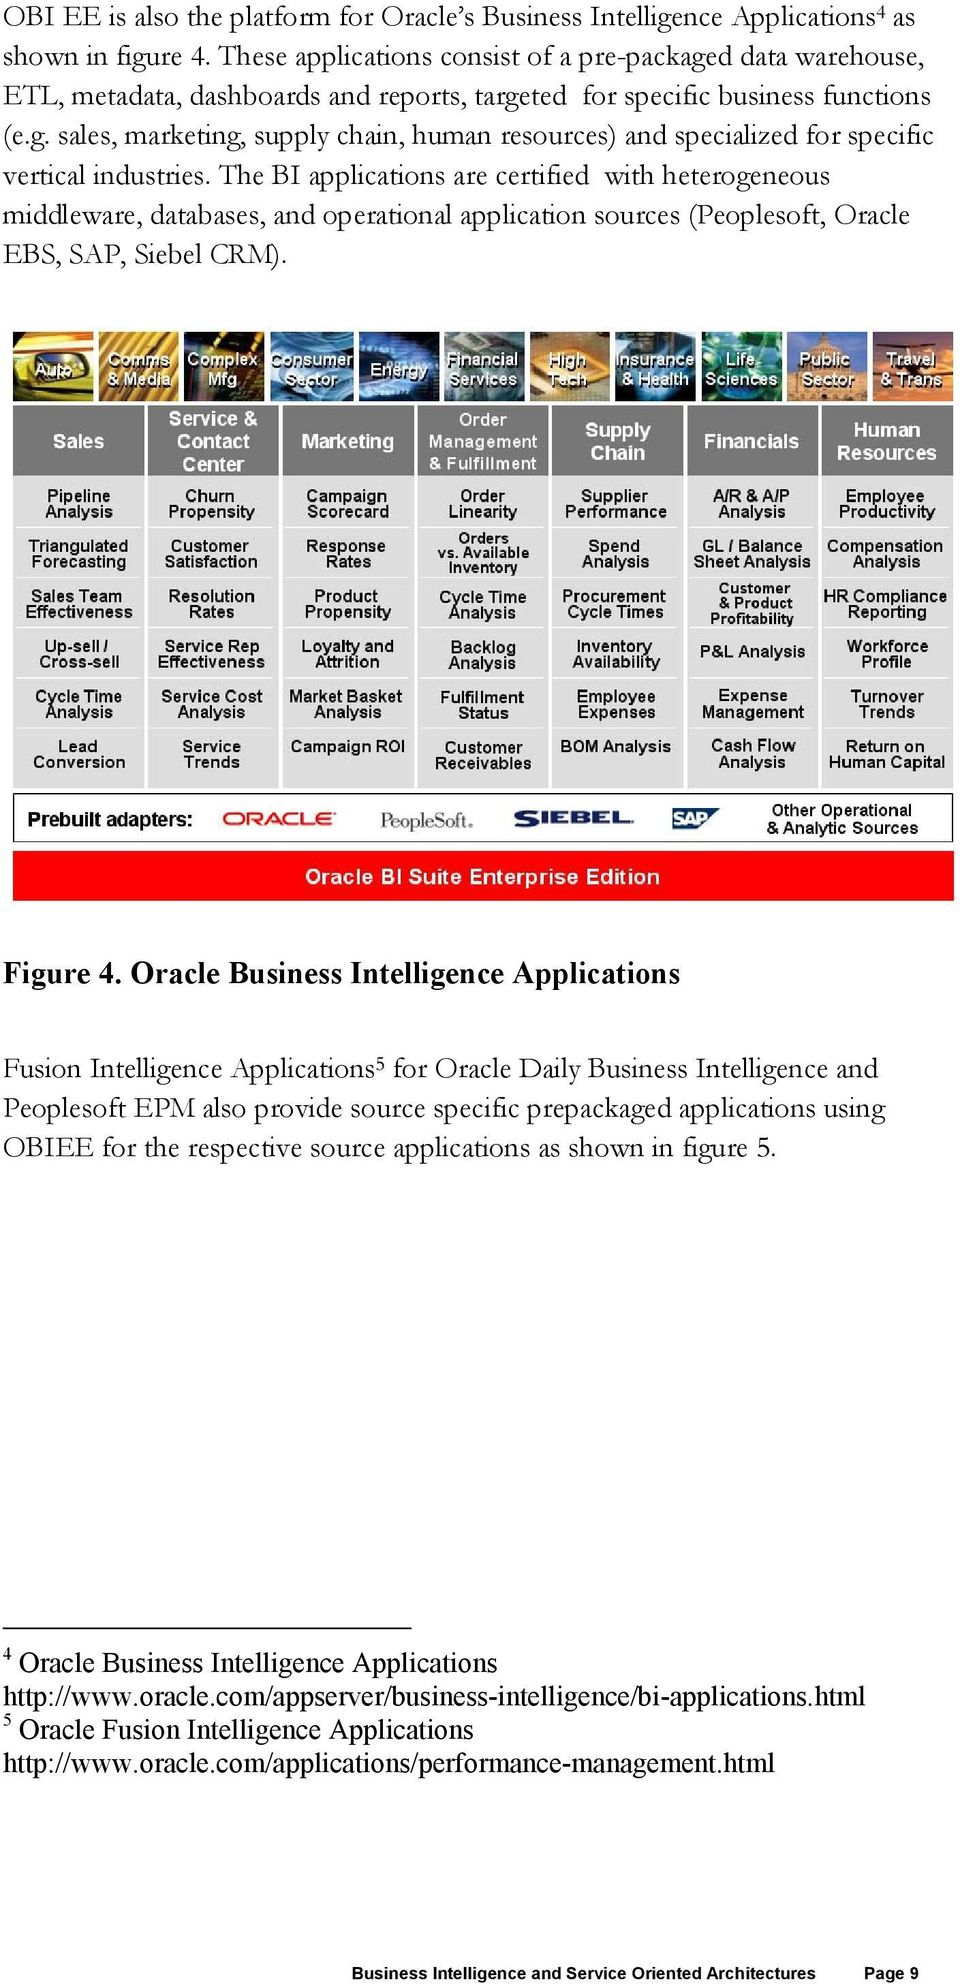 The BI applications are certified with heterogeneous middleware, databases, and operational application sources (Peoplesoft, Oracle EBS, SAP, Siebel CRM). Figure 4.